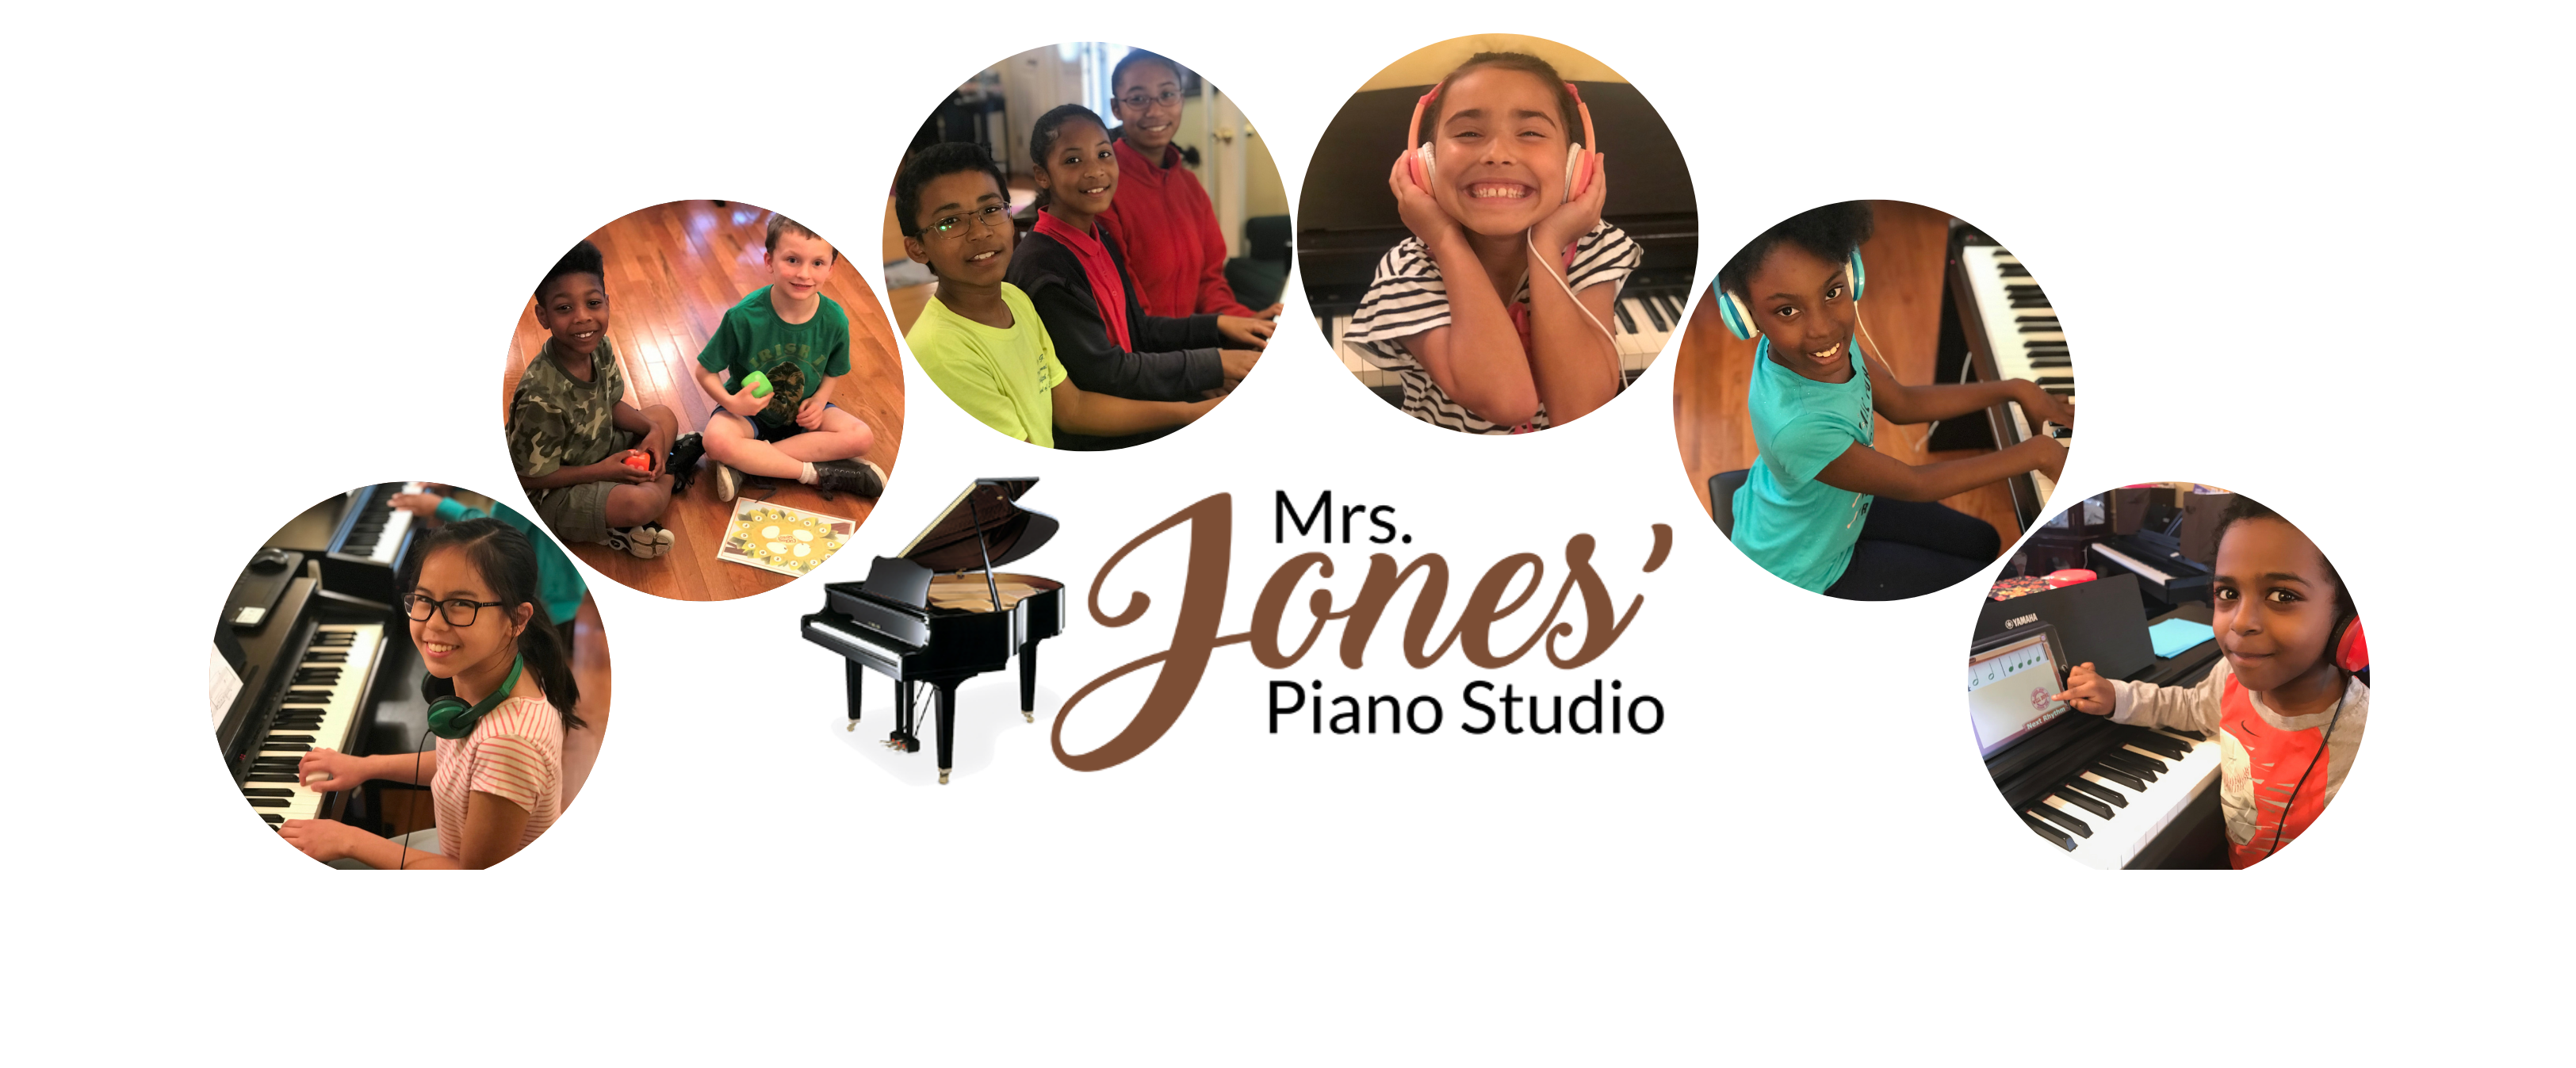 Mrs. Jones' Piano Studio